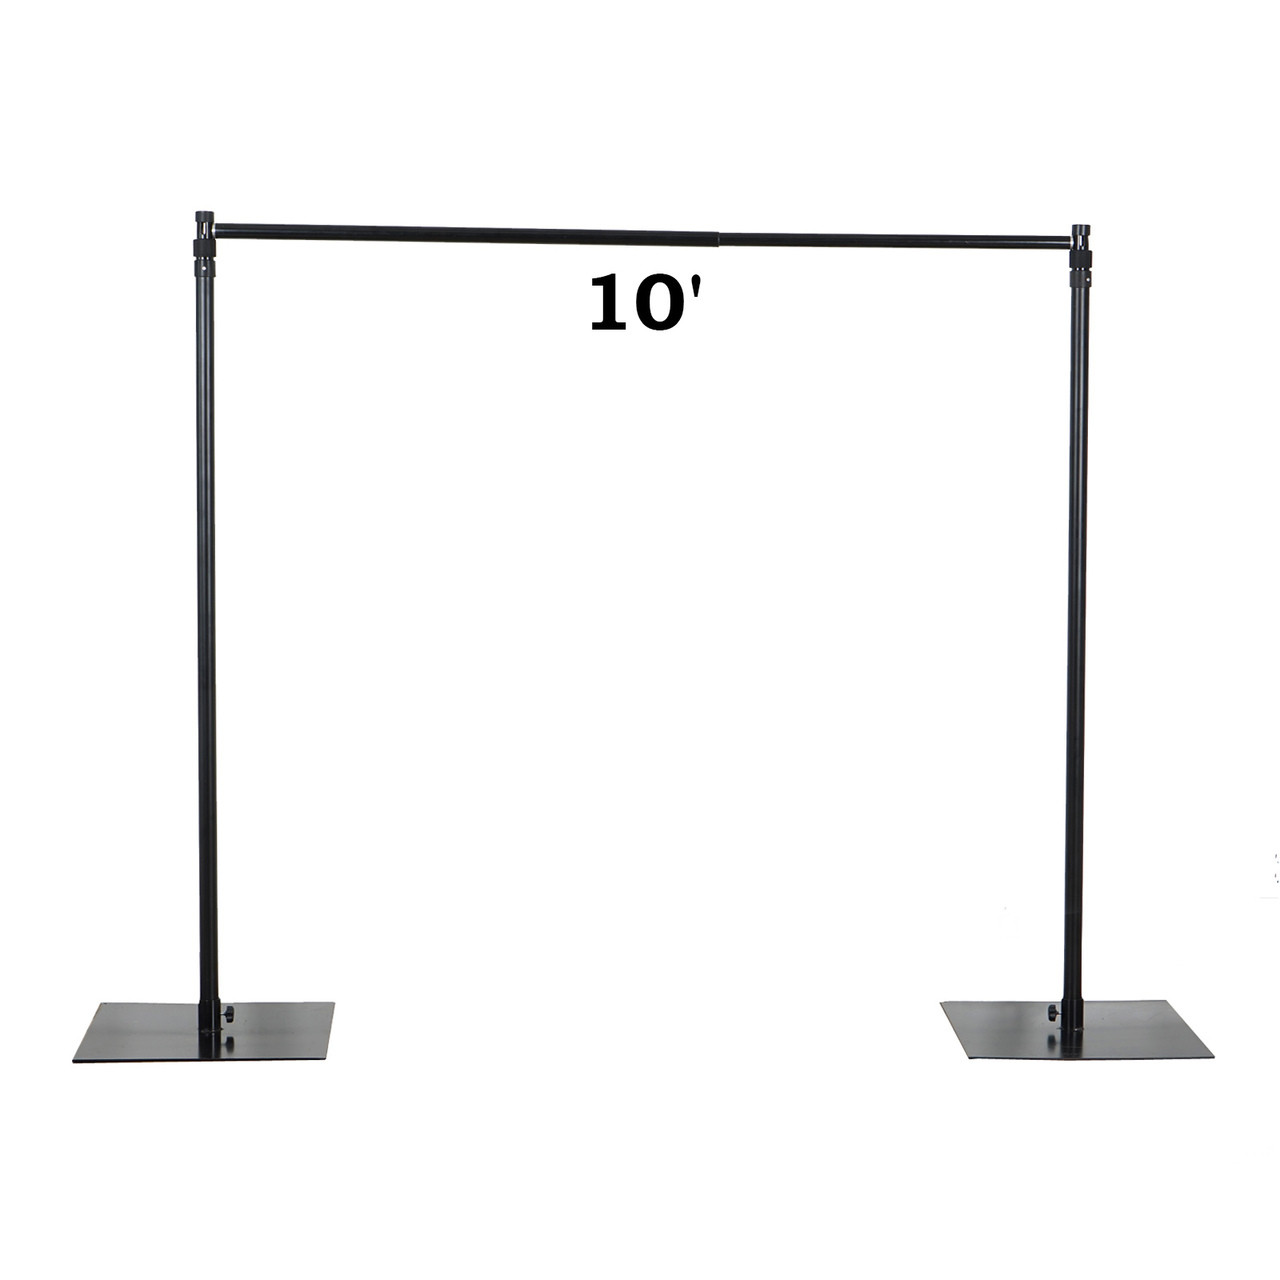 Heavy Duty Economical Pipe and Drape Kit Backdrop Support with Weighted Steel Base  sc 1 st  PB Backdrops & Heavy Duty Economical Pipe and Drape Kit Backdrop Support with ...